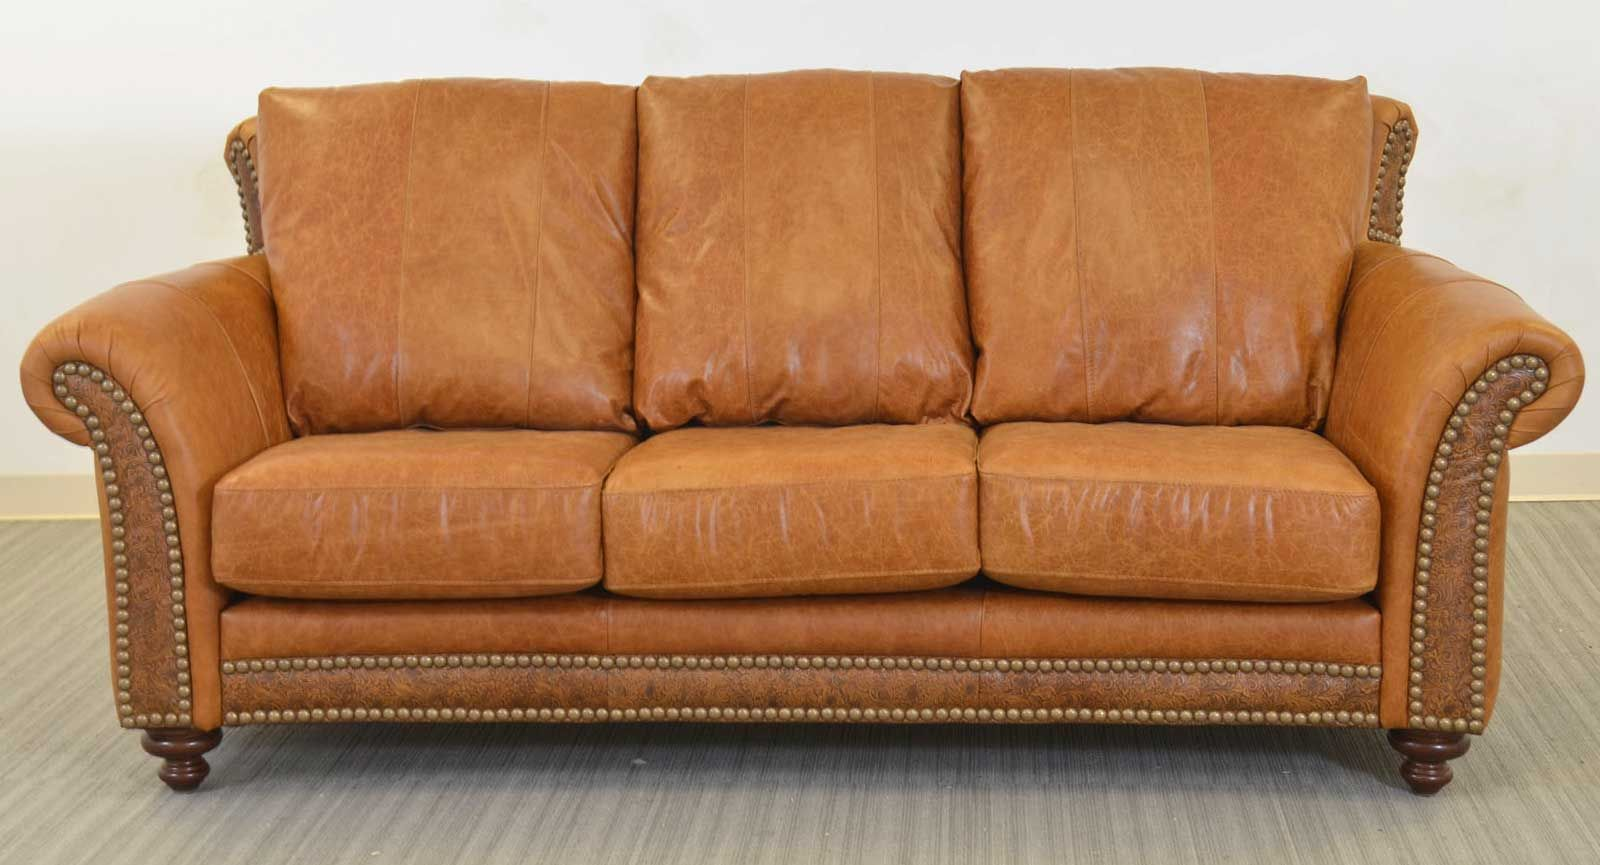 Astounding The Angela Sofa Is Made In Texas Usa Vintage Leather Ncnpc Chair Design For Home Ncnpcorg